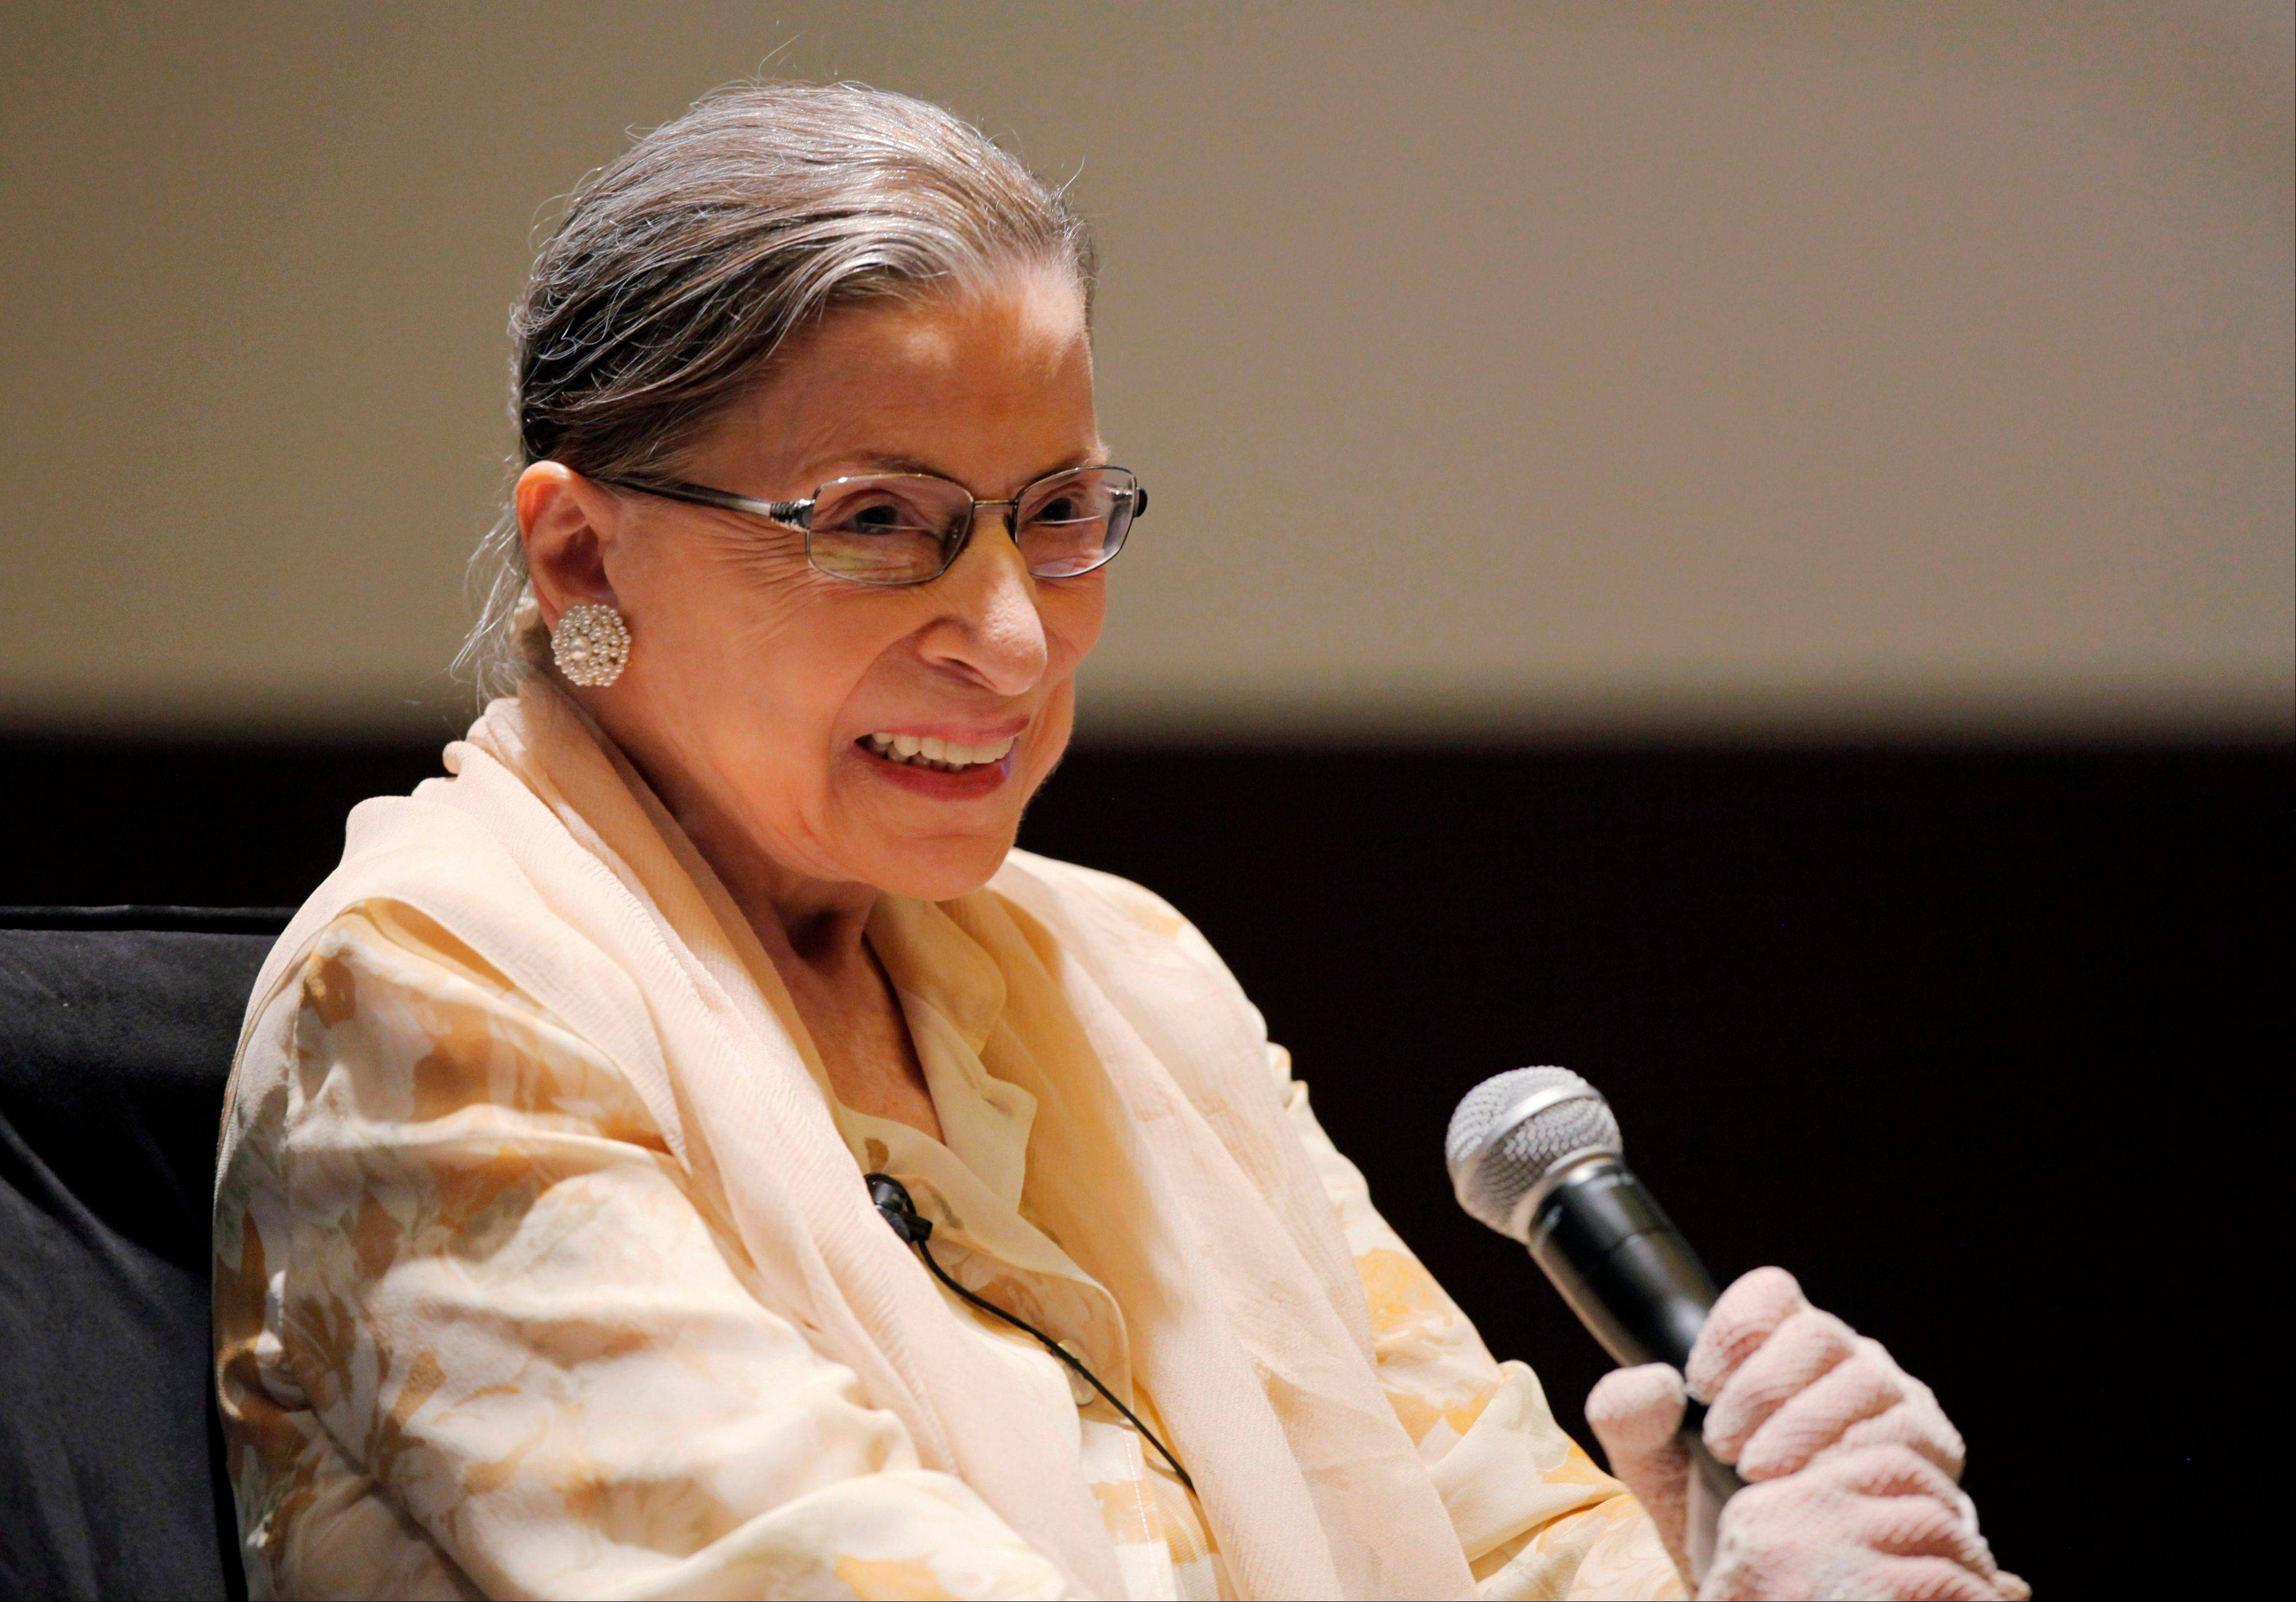 Supreme Court Justice and opera aficionado Ruth Bader Ginsburg participates in a panel discussion Friday during the American Bar Association's annual meeting in Chicago. Ginsburg was joined other panelists as they listened to performances of arias in an unusual discussion of the lessons operatic performance can bring to the law.